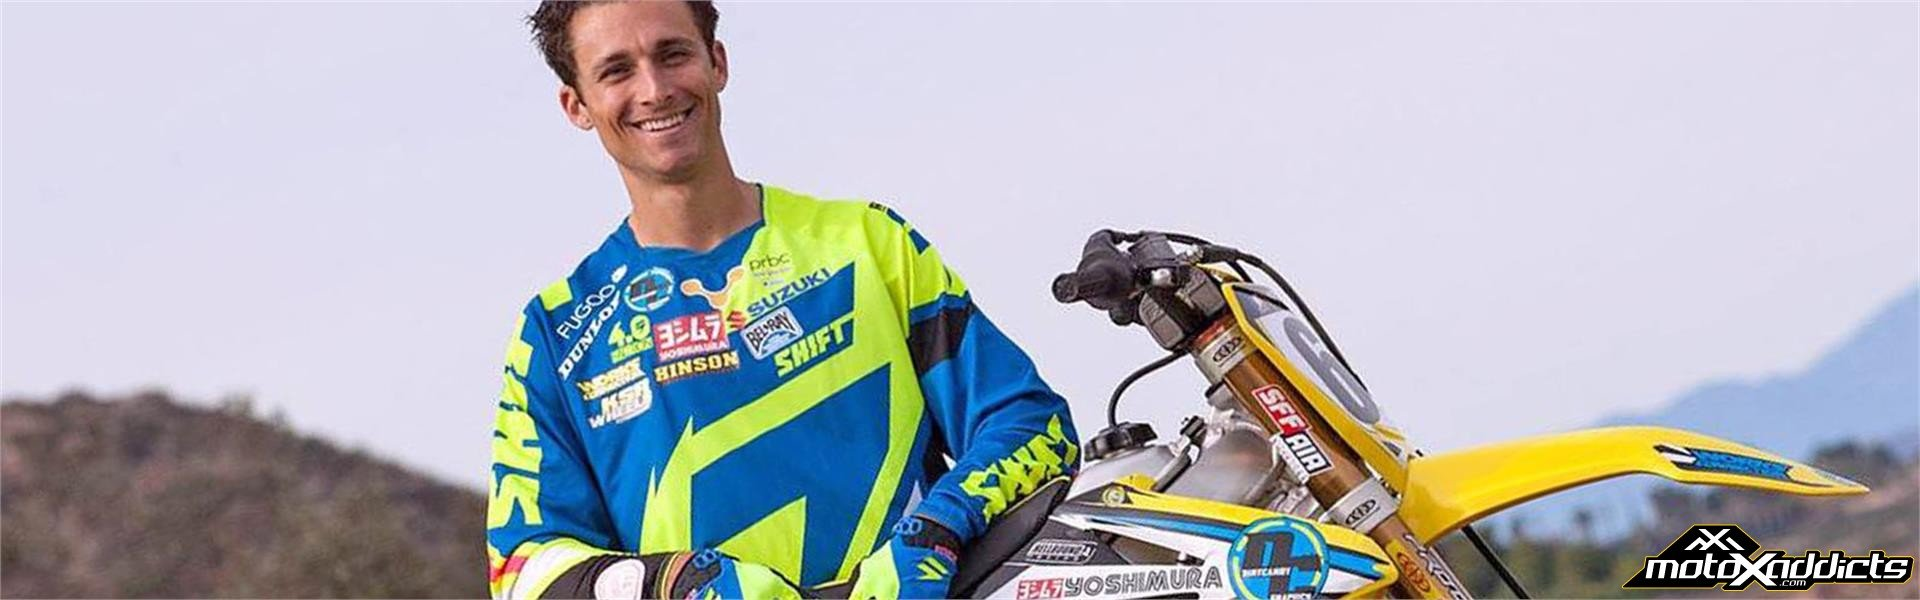 Stewart and Golden Sign with MICROBILT/PRBC SUZUKI